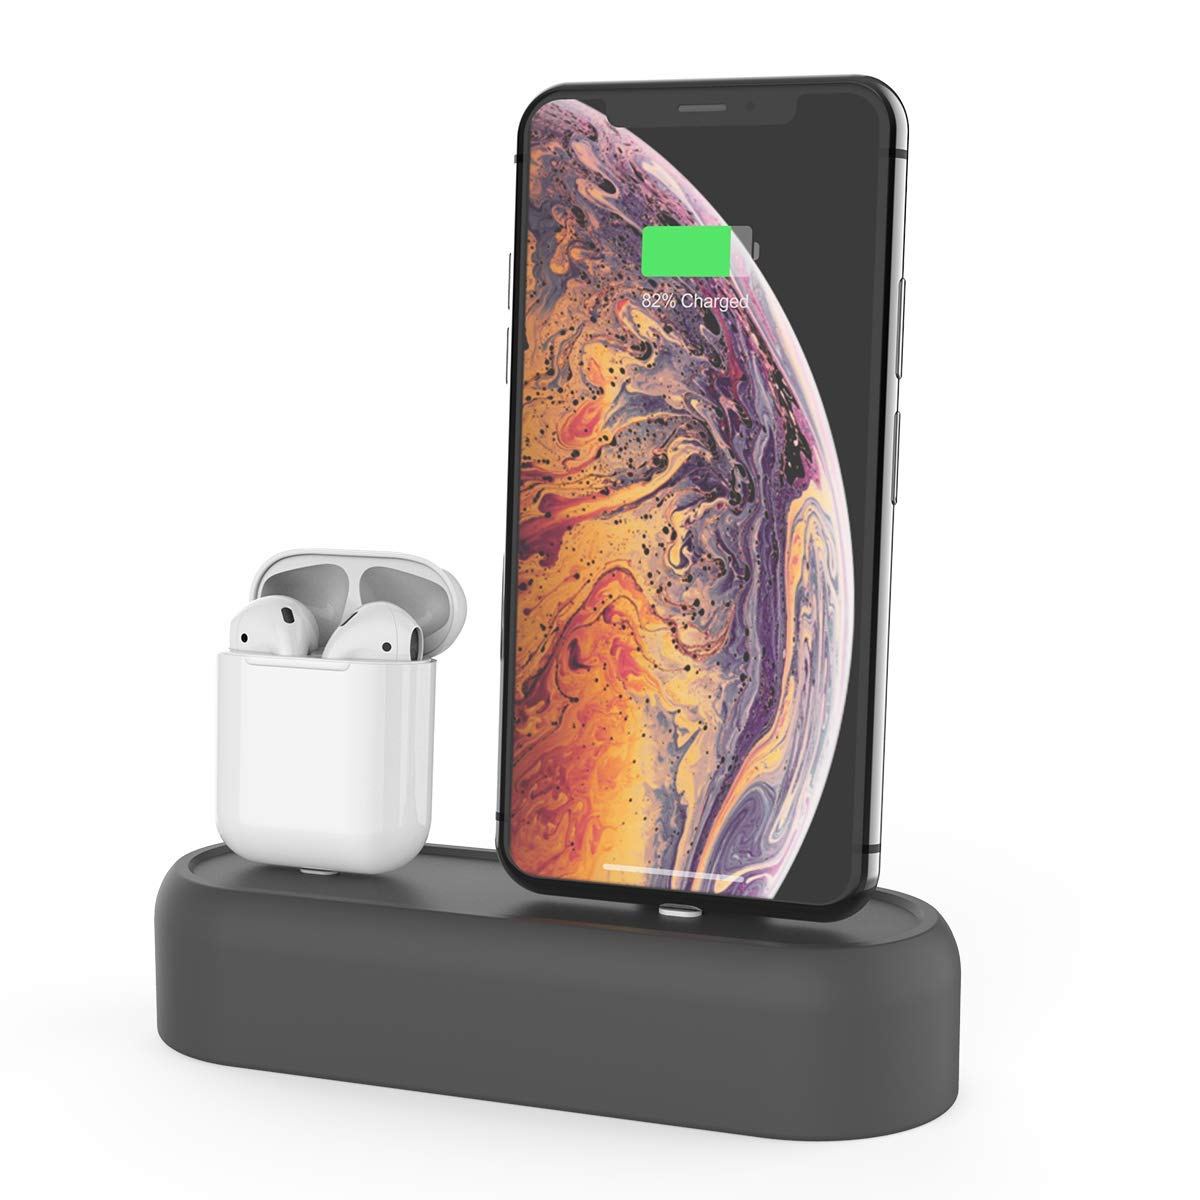 2 in 1 Silicone Charging Dock Stand for